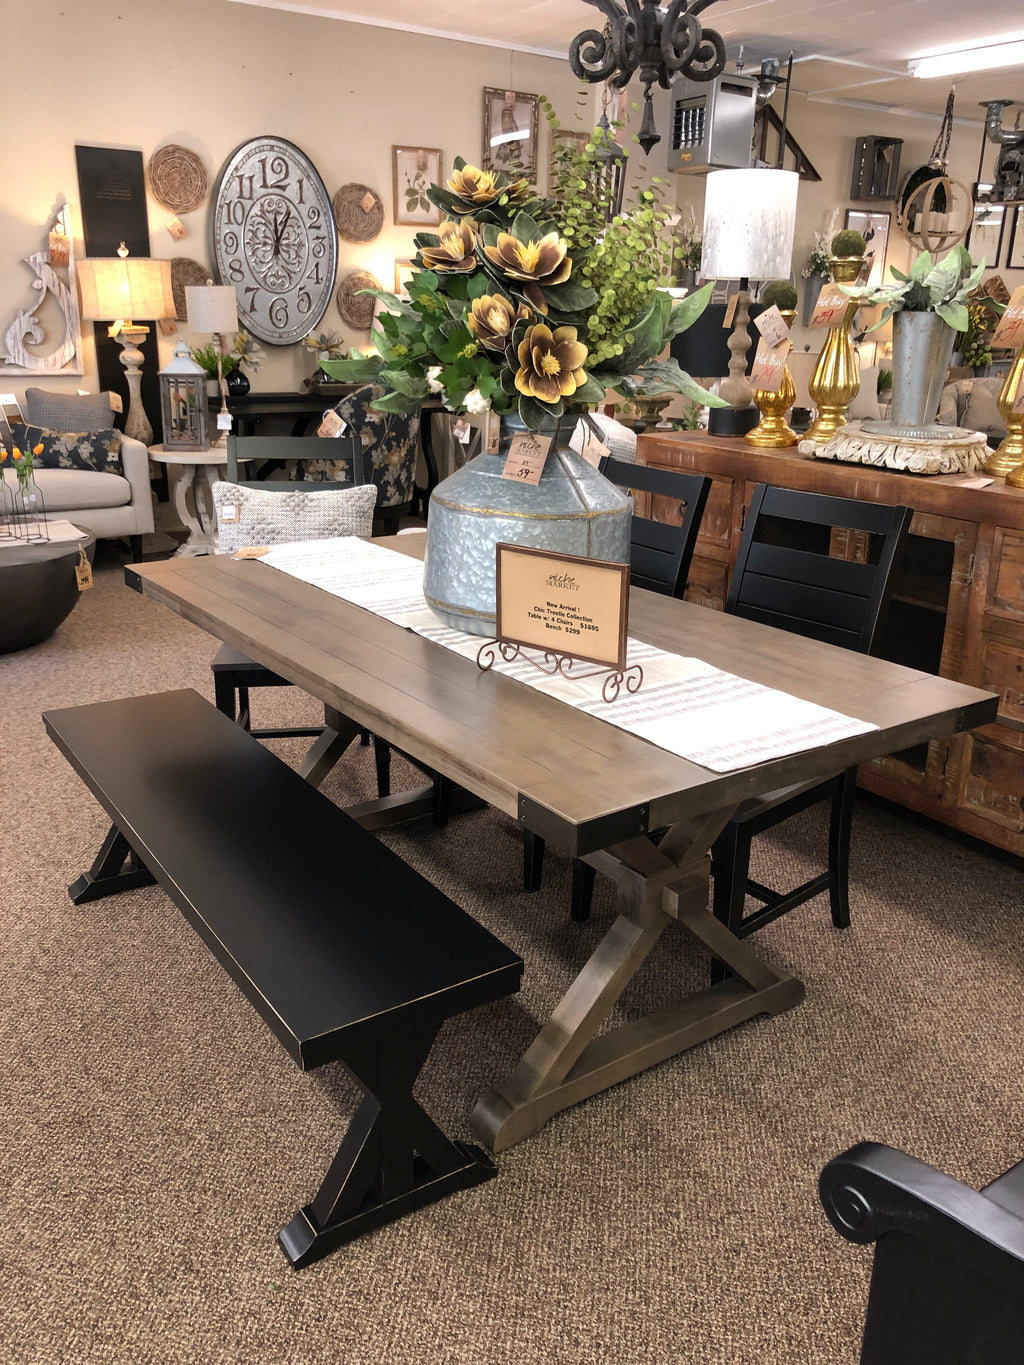 Chic Quarry Trestle Table w/Base